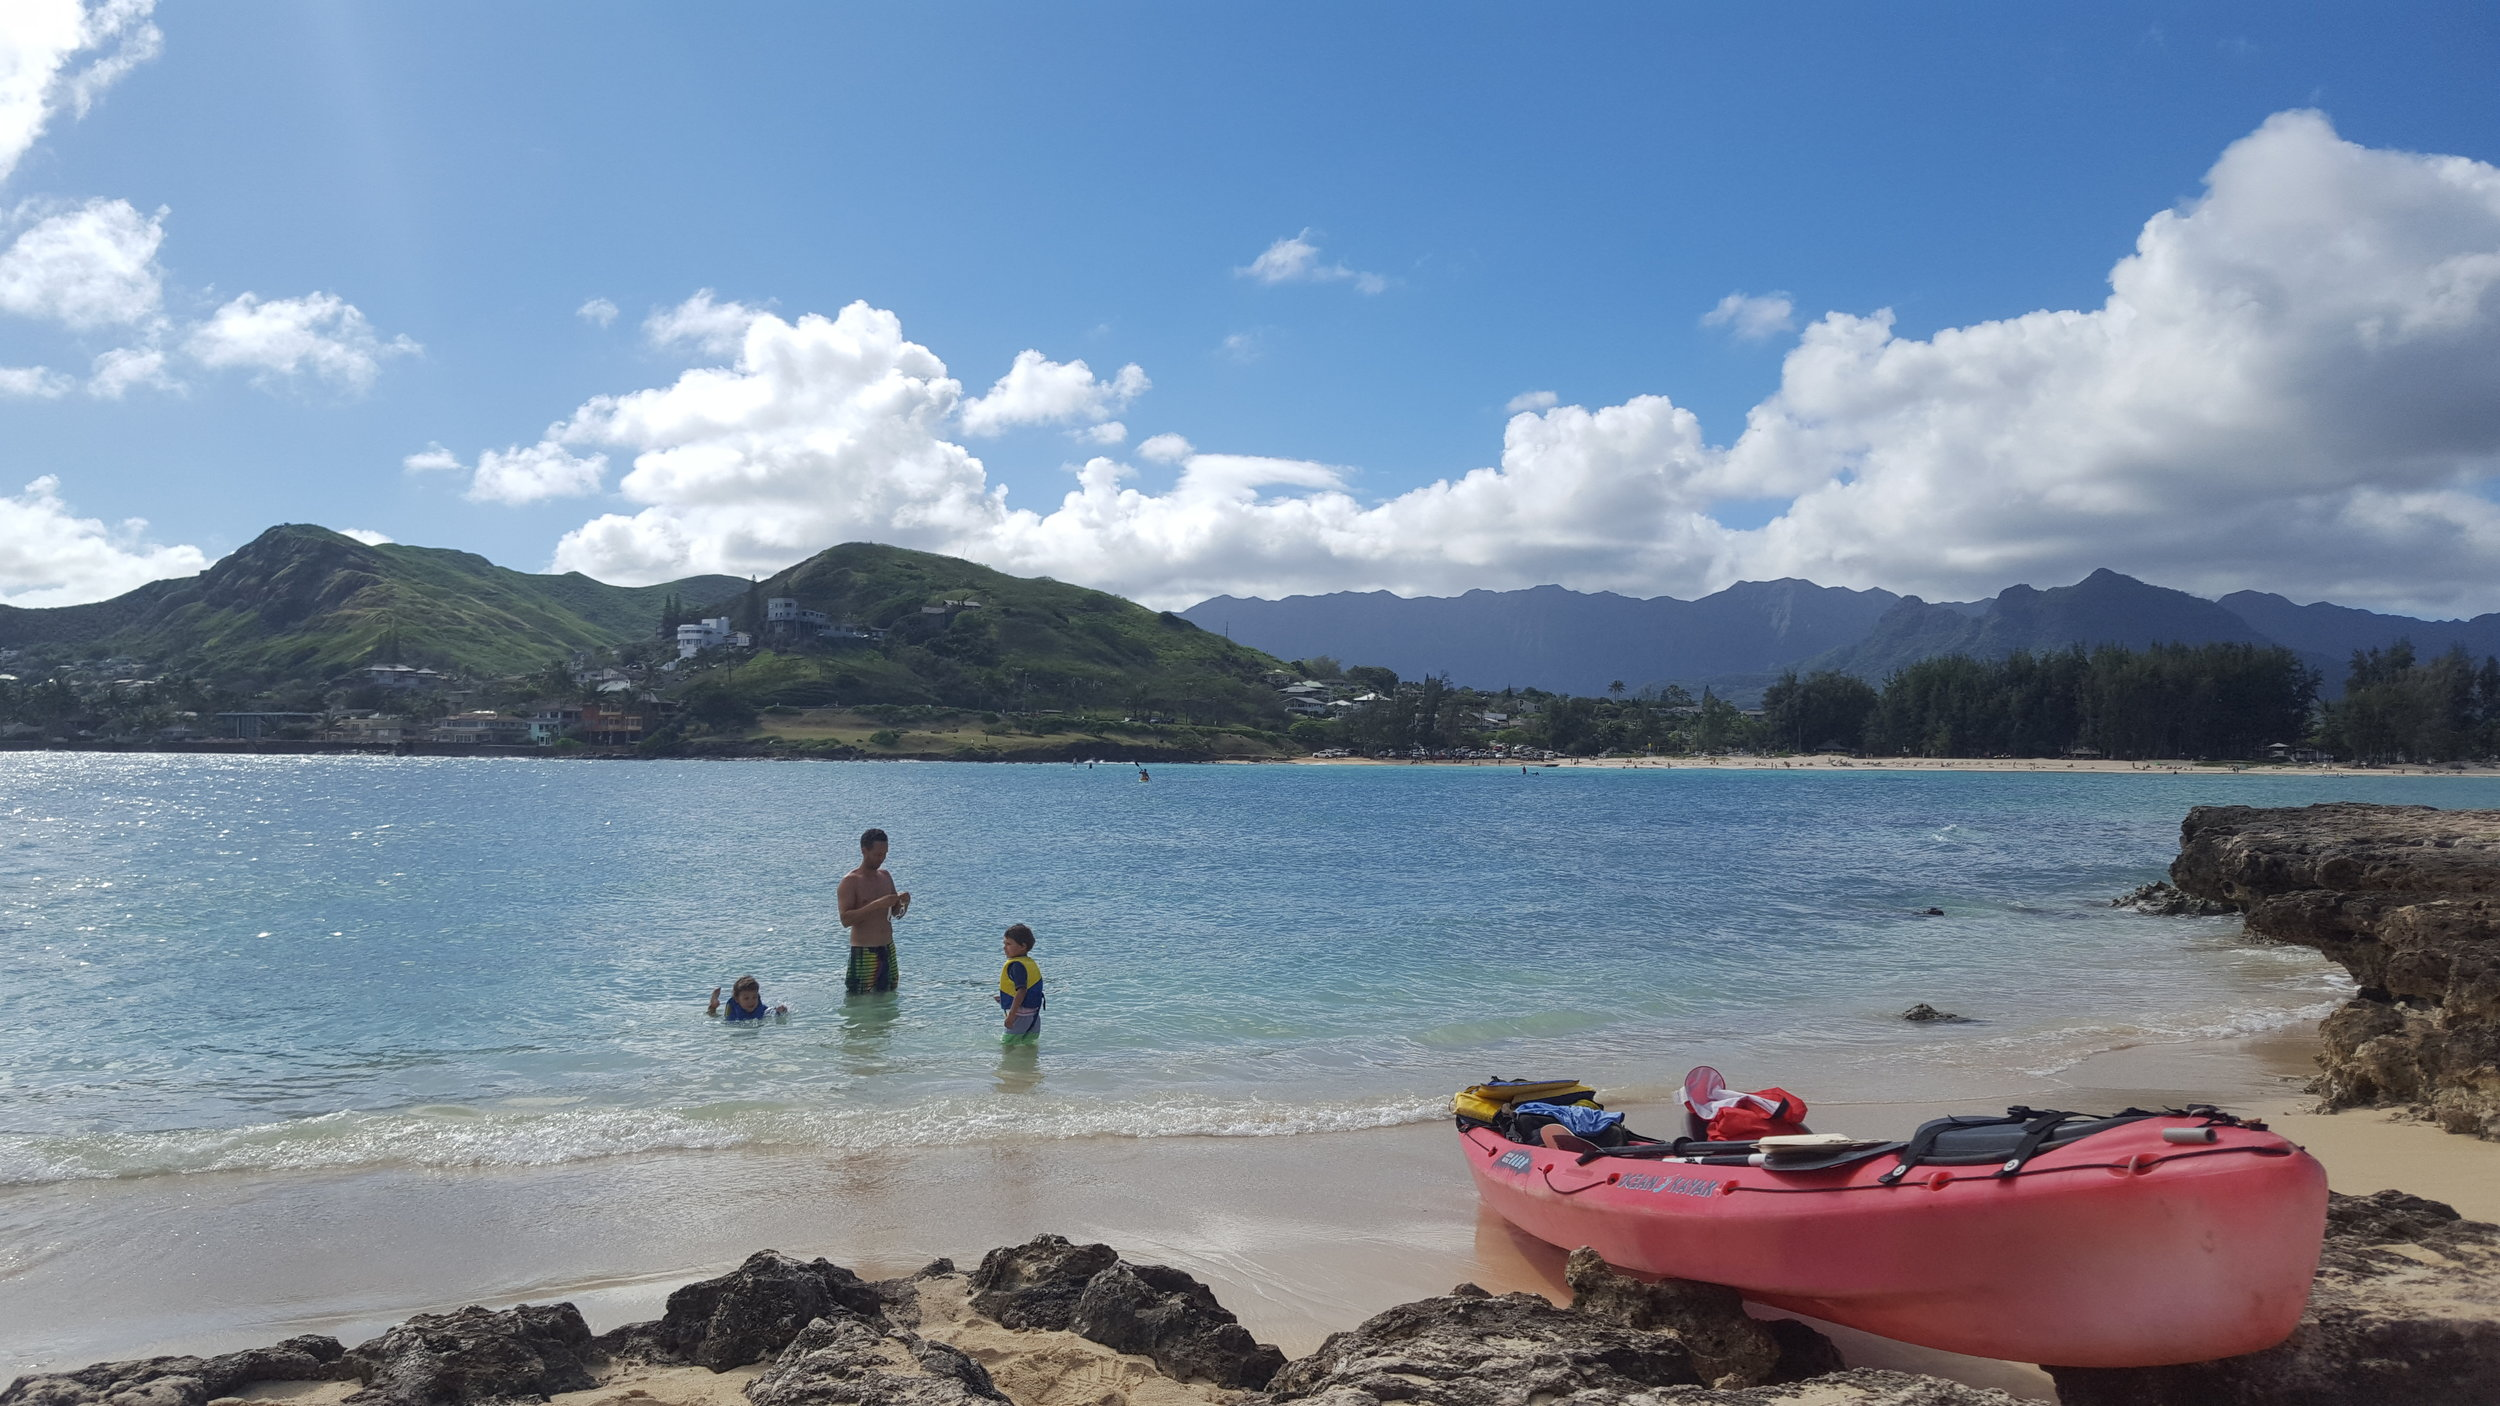 Heading out for a swim (you can see Kailua beach in the distance. This is where we started).